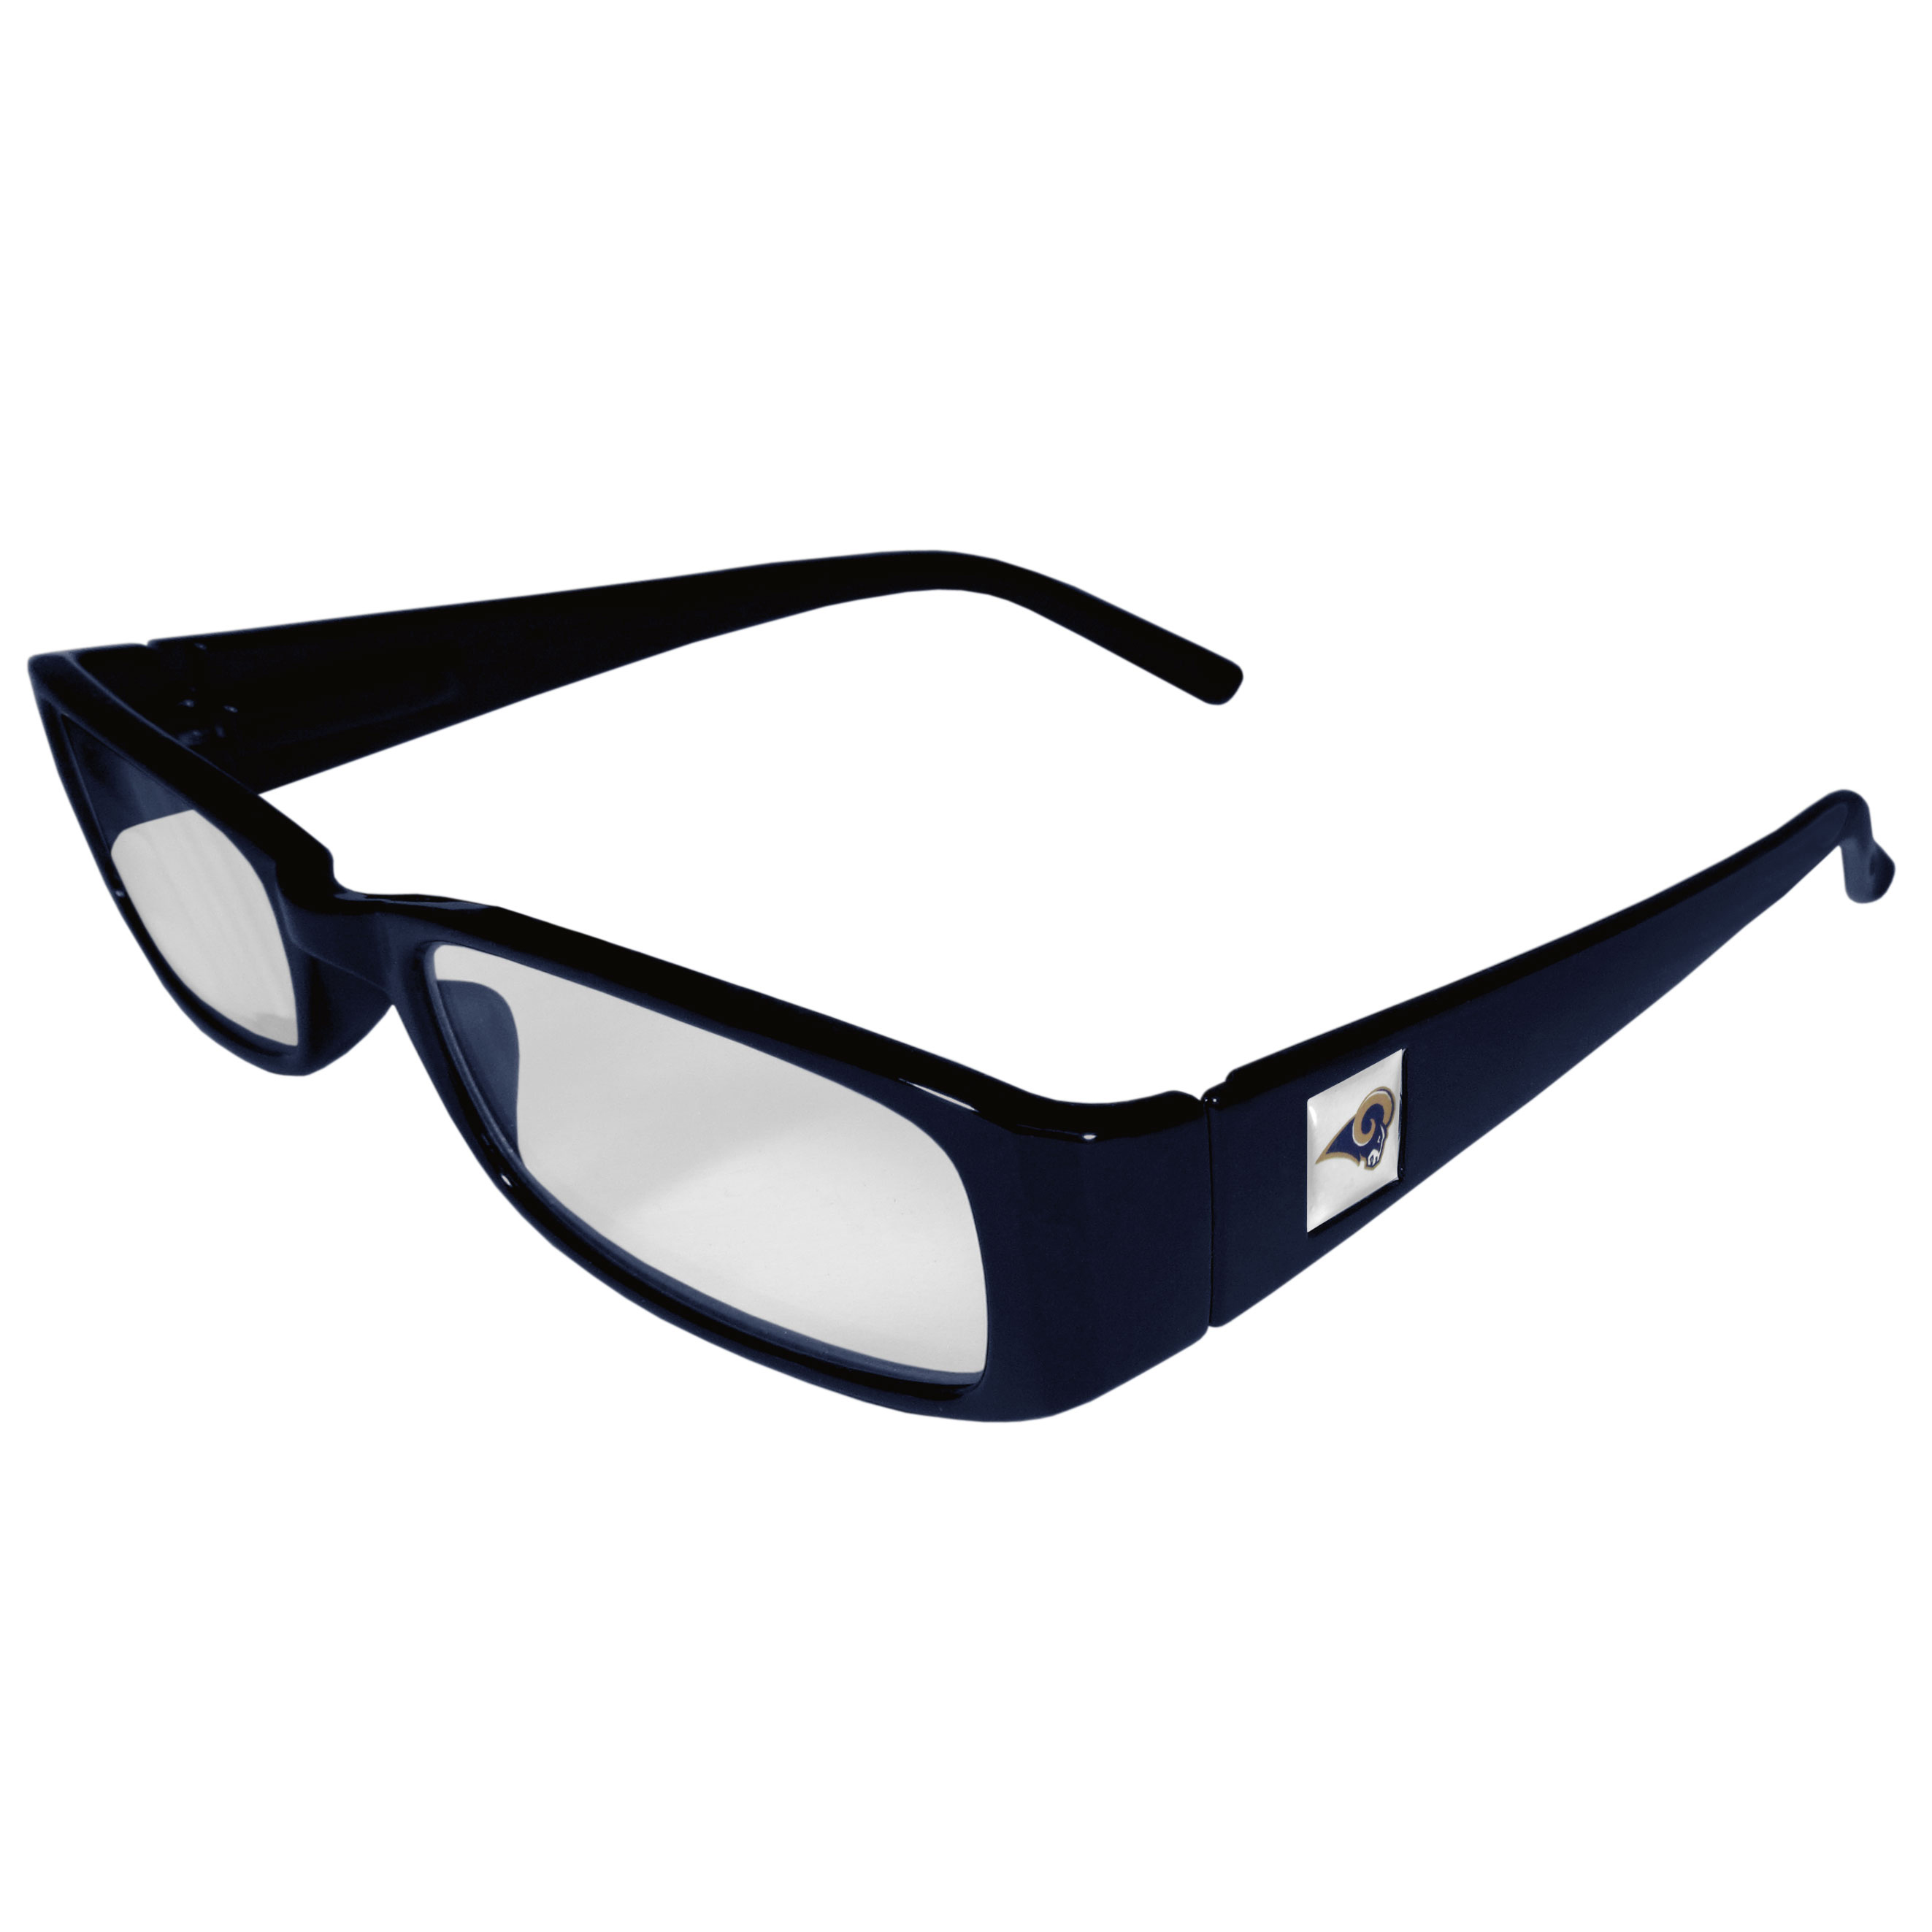 St. Louis Rams Reading Glasses +1.25 - Our St. Louis Rams reading glasses are 5.25 inches wide and feature the team logo on each arm. Magnification Power 1.25